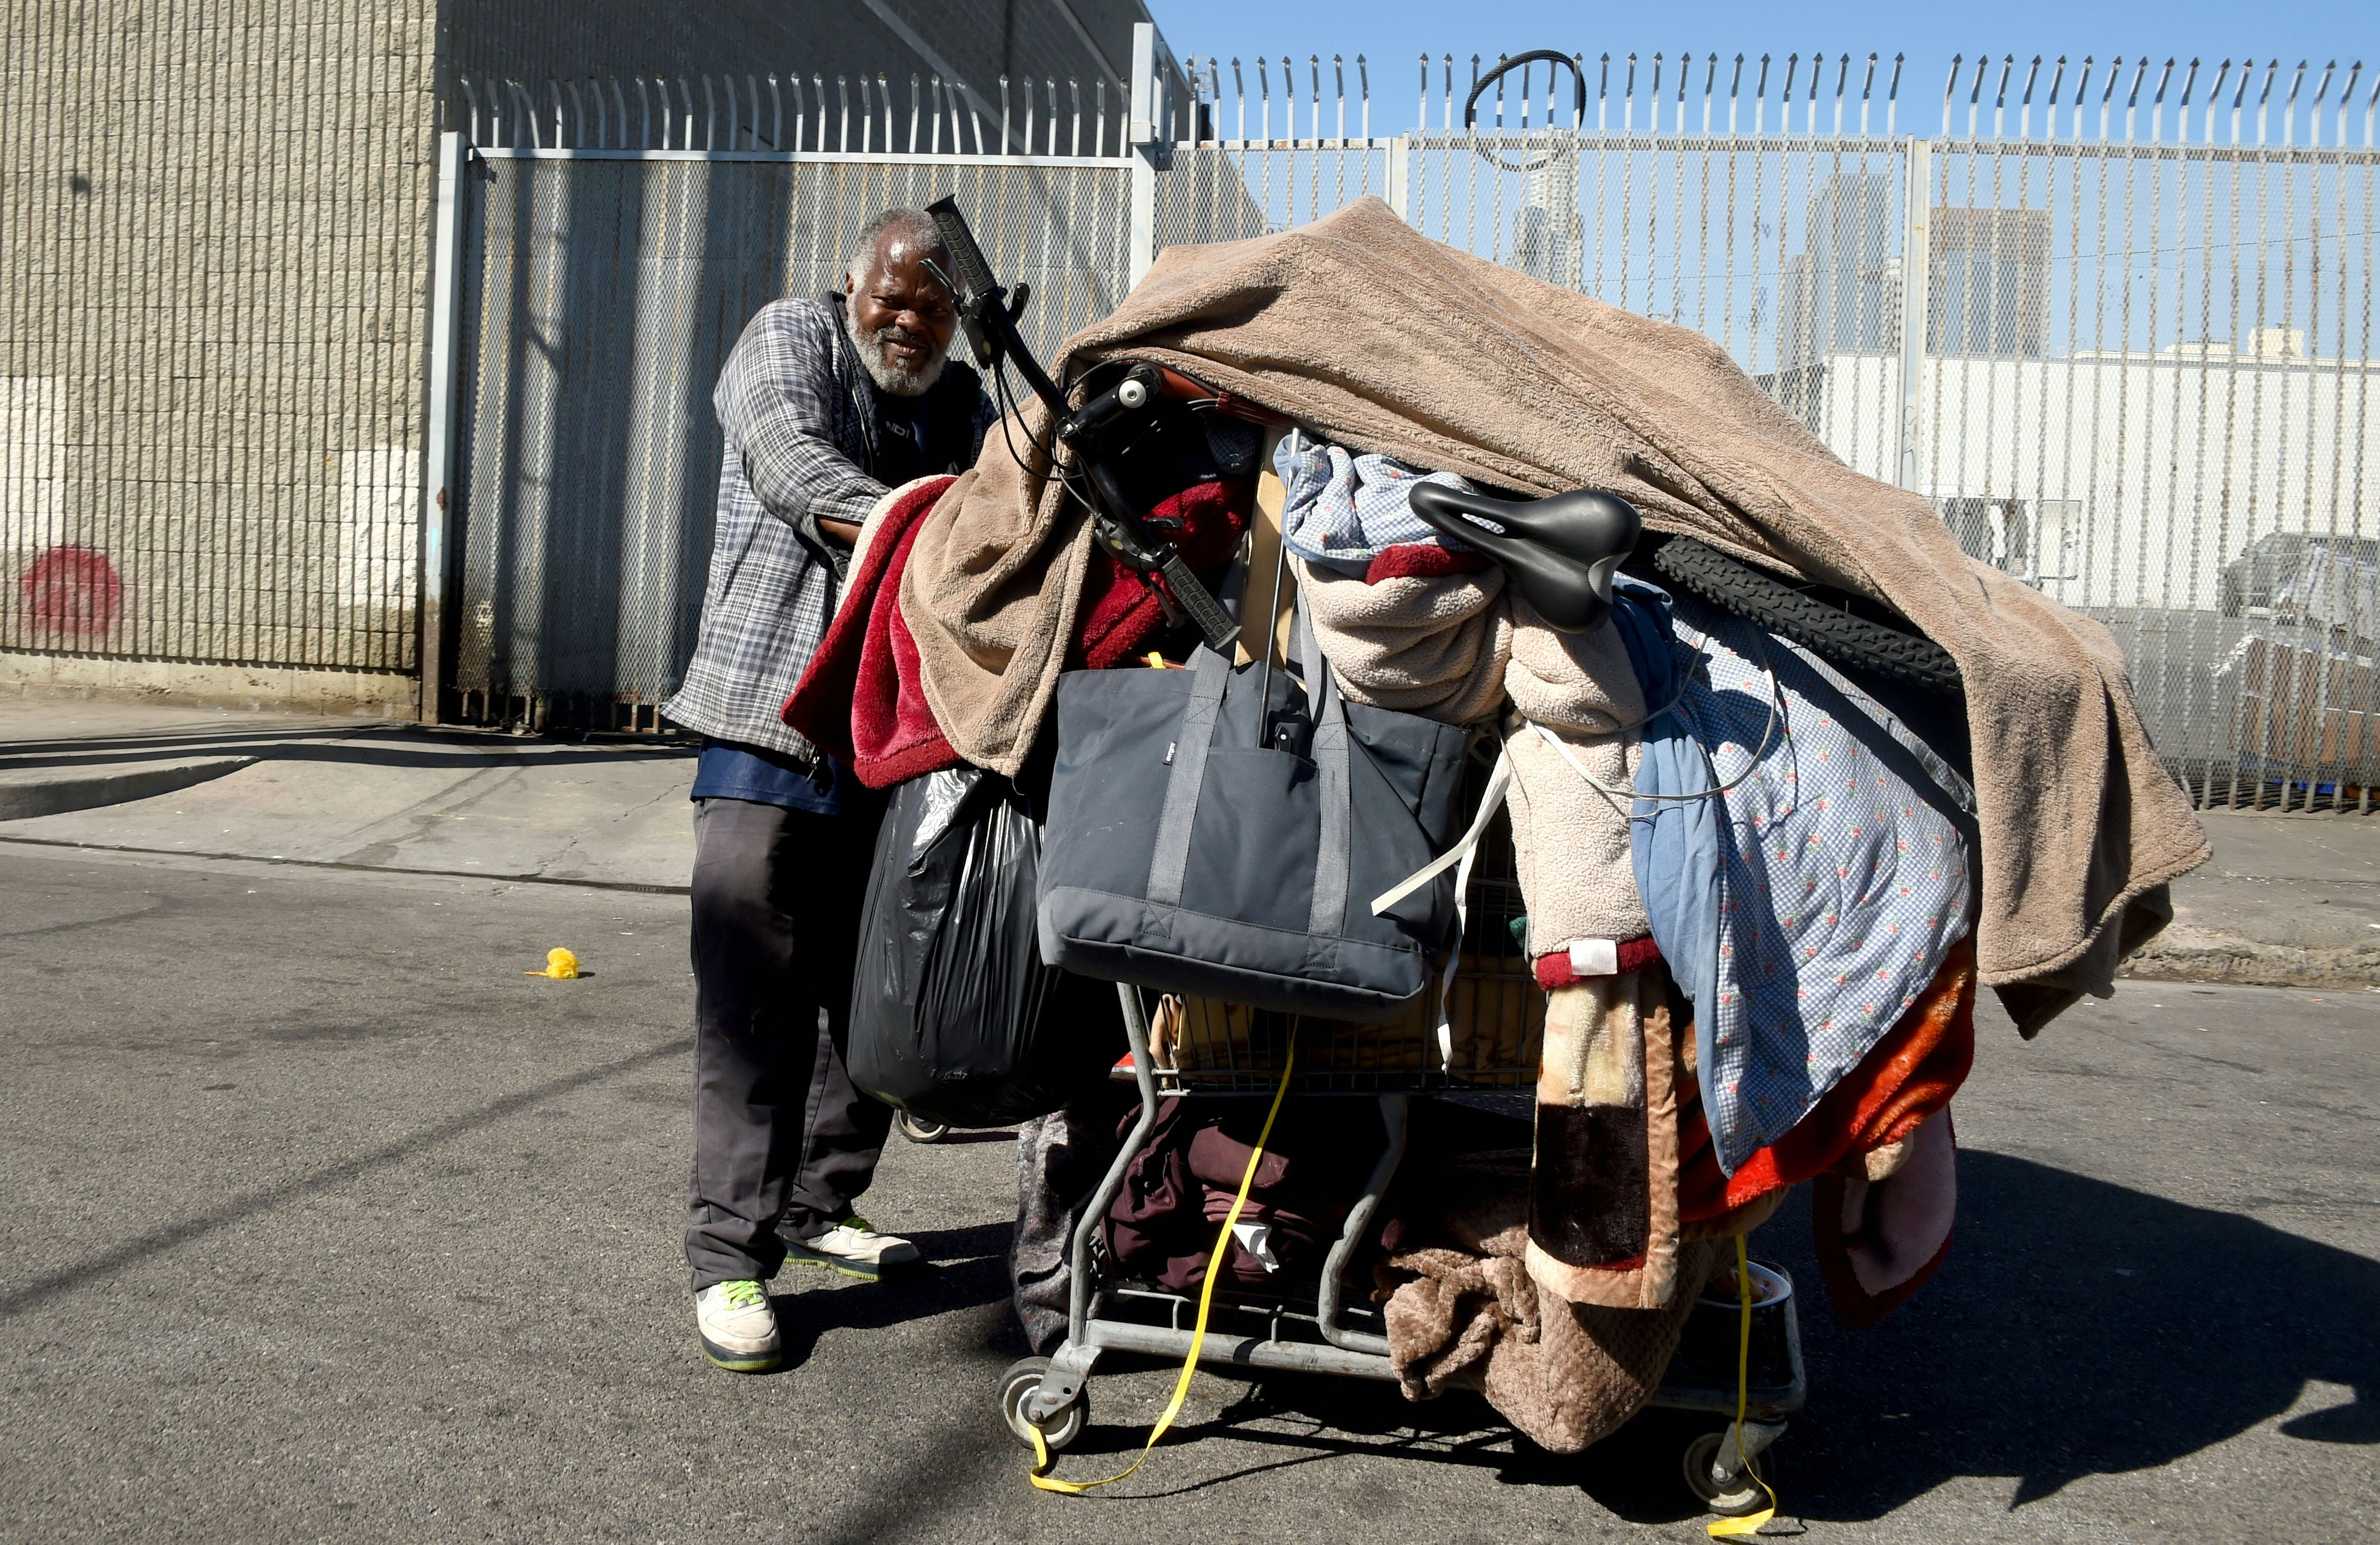 US-SOCIETY-POVERTY-HOMELESS